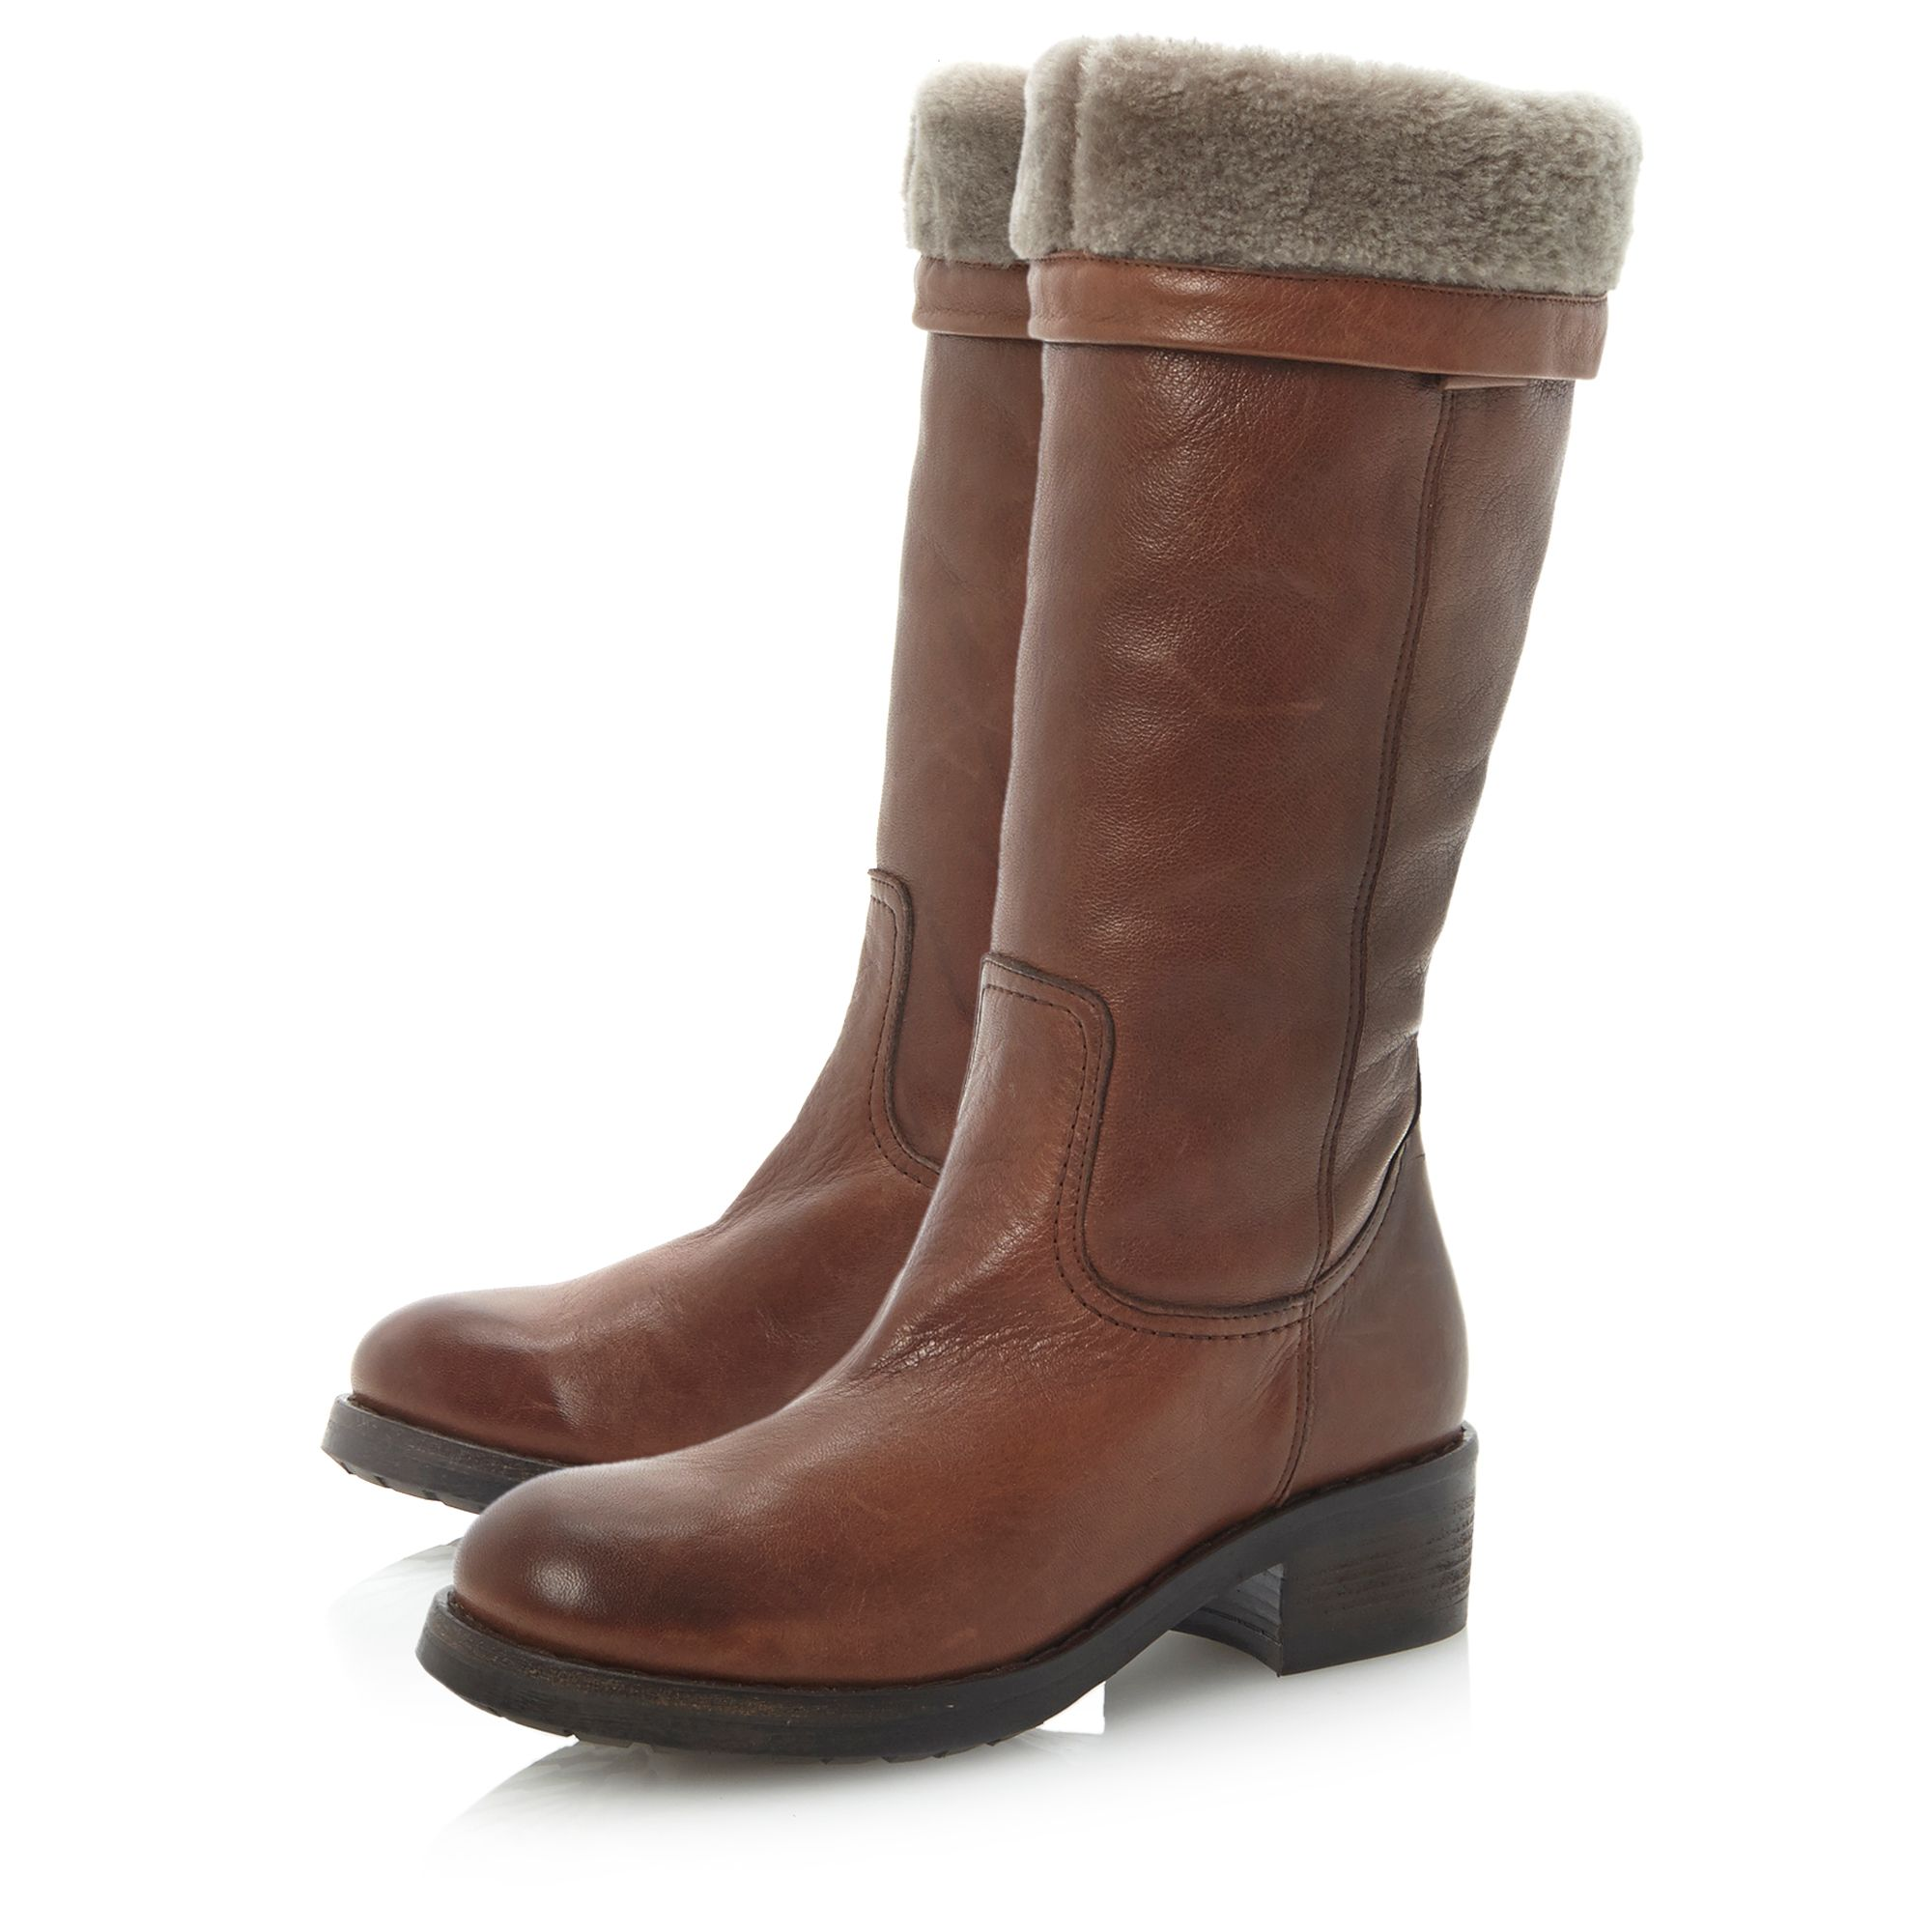 Prestop pull on faux fur lined boots